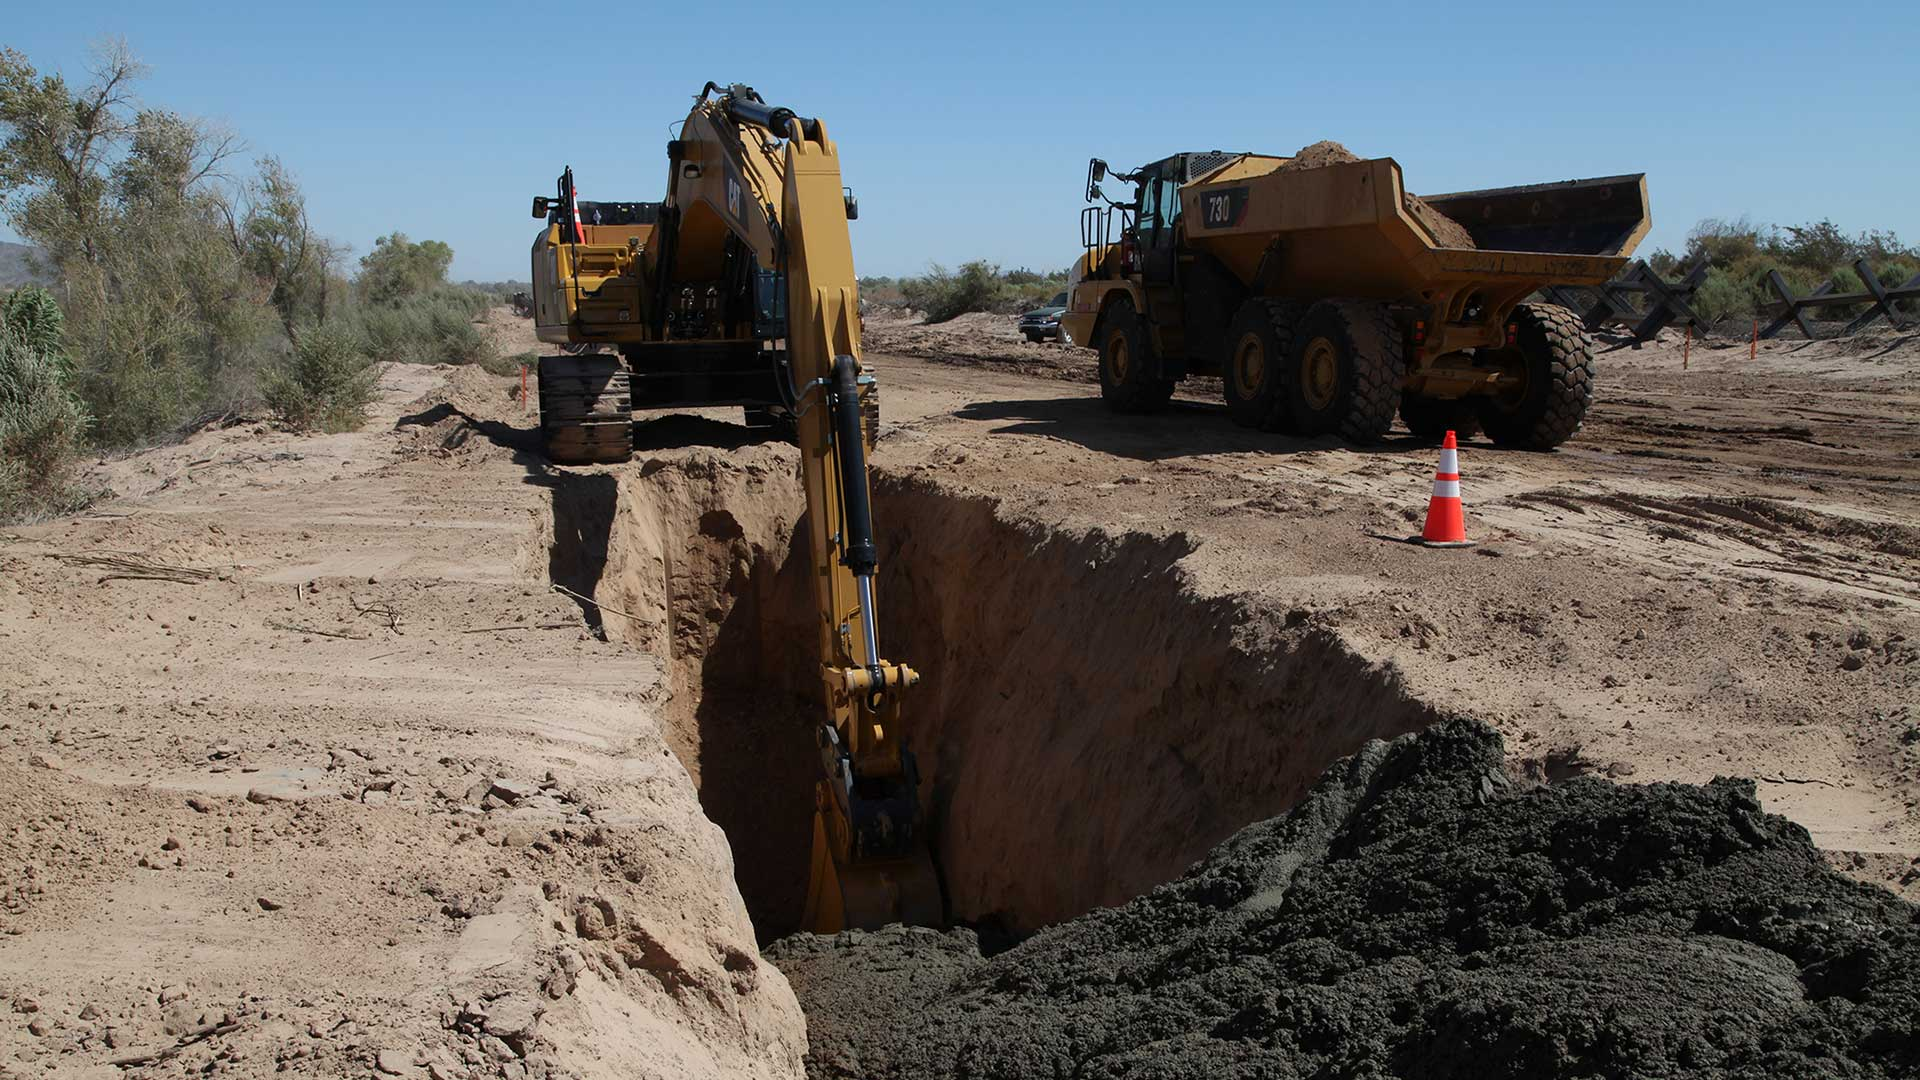 Army Corps of Engineers contractors pour concrete in August for the base of a new section of border wall near Yuma. The Department of Homeland Security waived environmental and other regulations on 90 miles of Arizona's border last year to smooth the way for border wall construction projects.